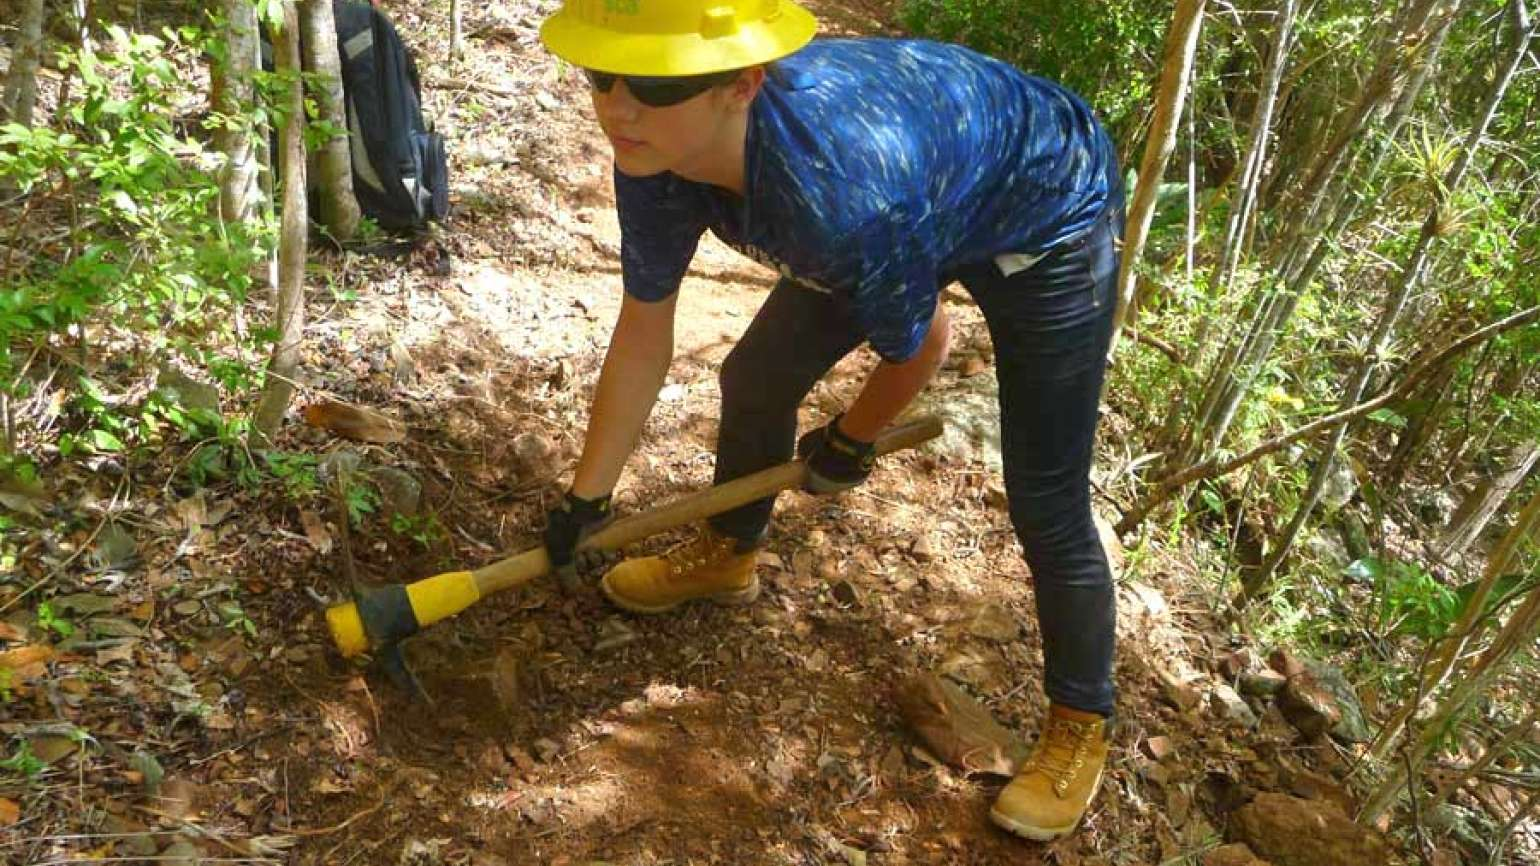 Guideposts: Lenore's daughter Kalle gets down to work on the trail.